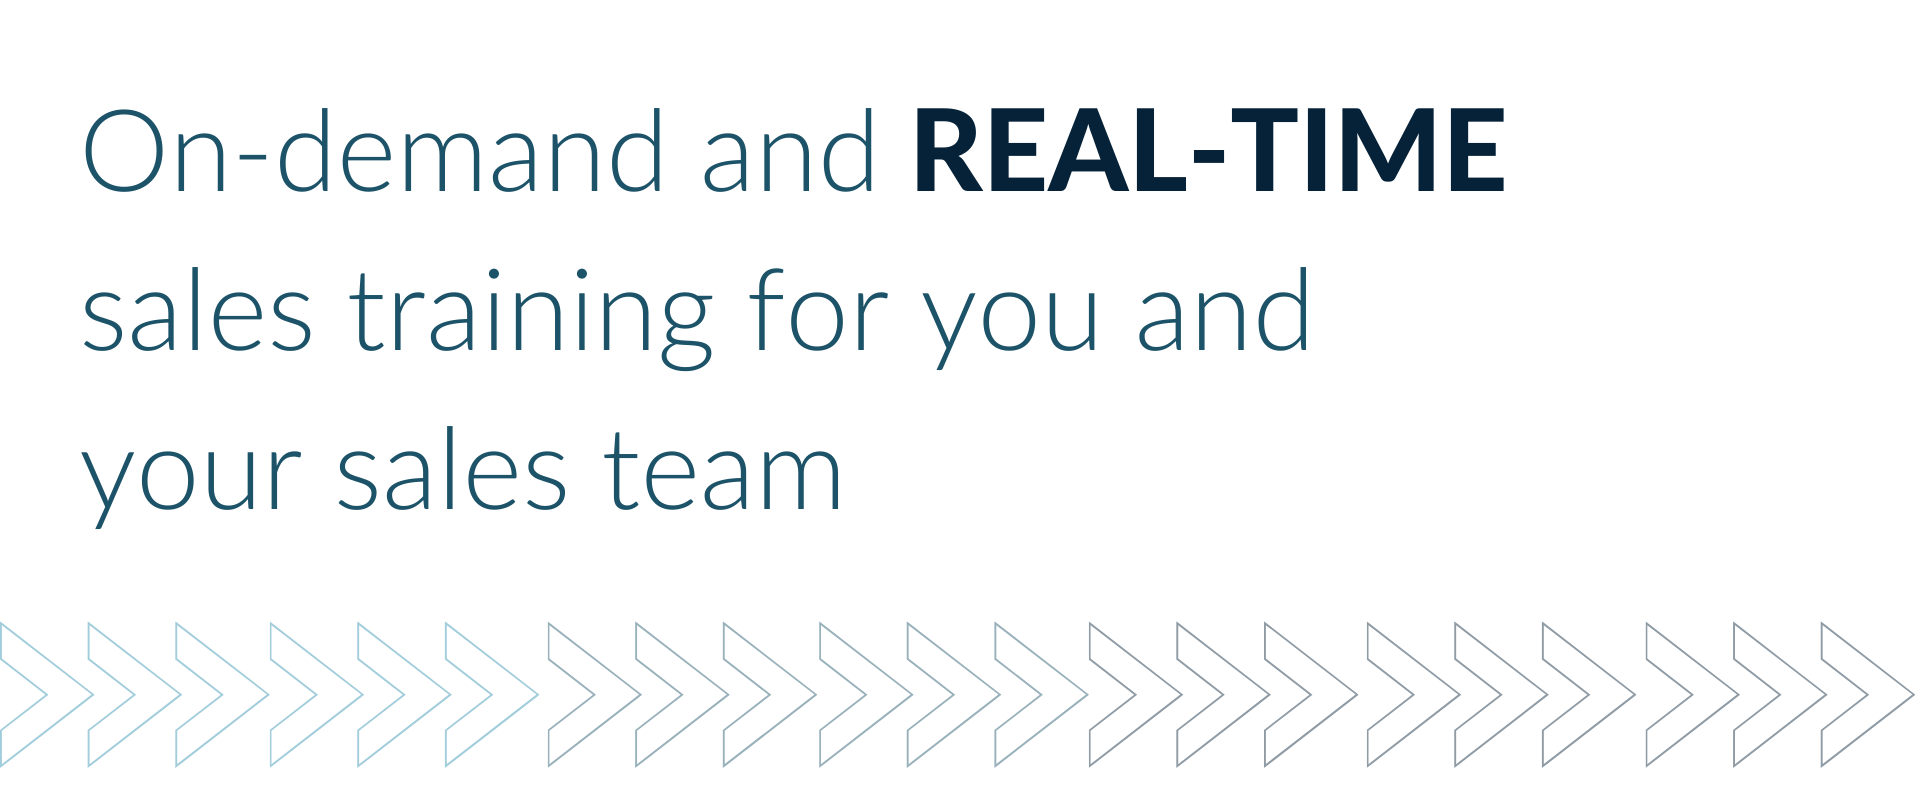 On-demand and real-time sales training for you and your sales team